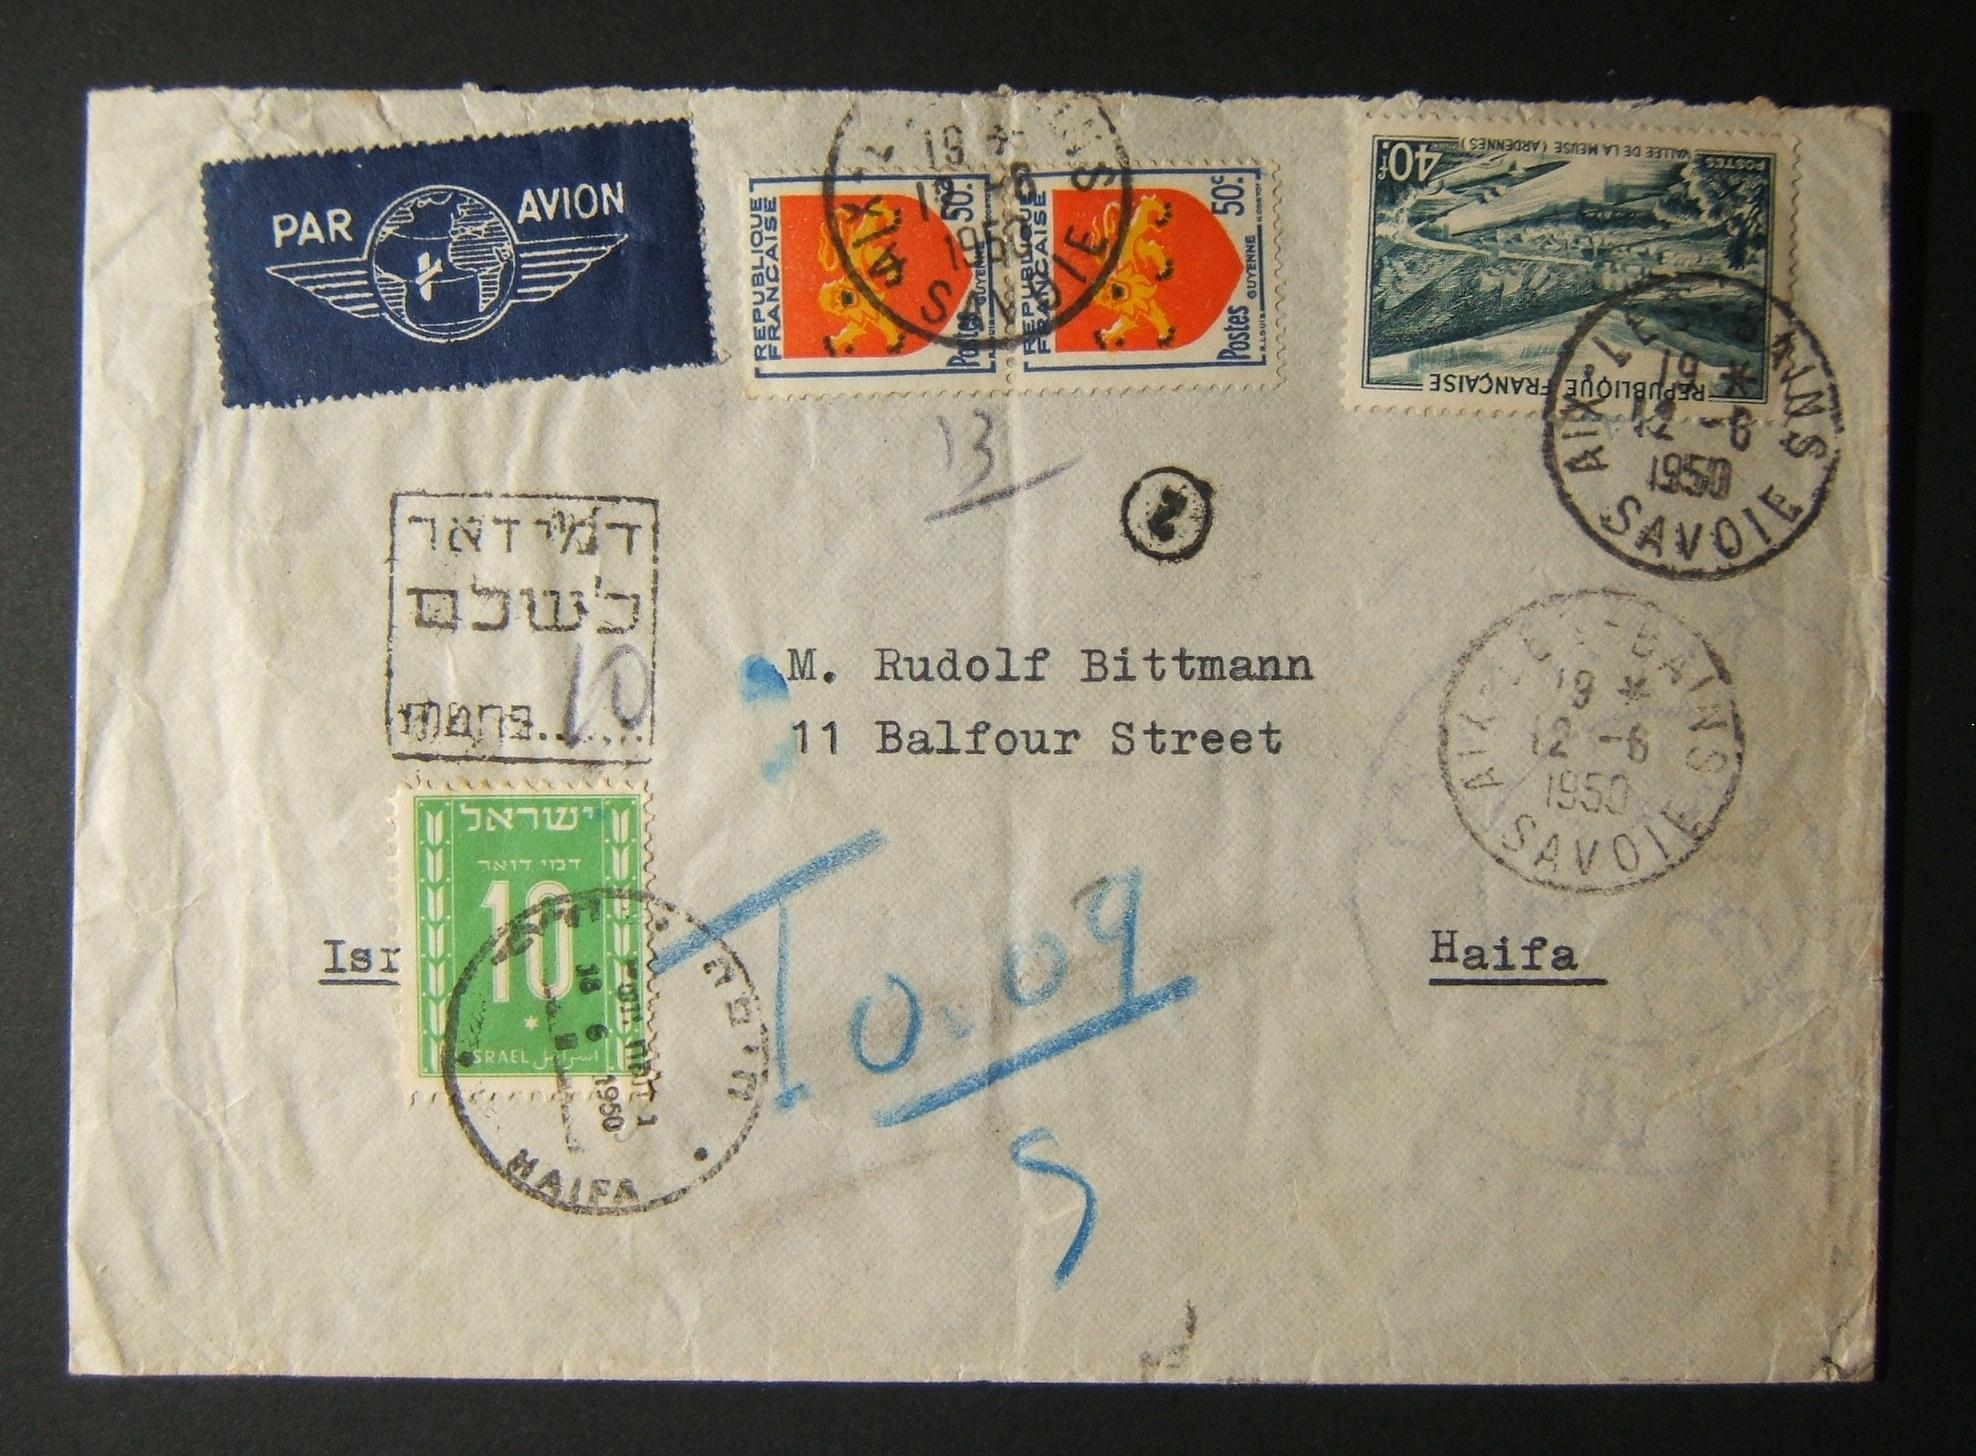 1950 2nd postage dues on incoming French mail: 12-6-1950 airmail cv ex AIX LES BAINS (return addressed Belgium) to HAIFA underfranked at 41f and taxed 10Pr in Israel, marked by sca